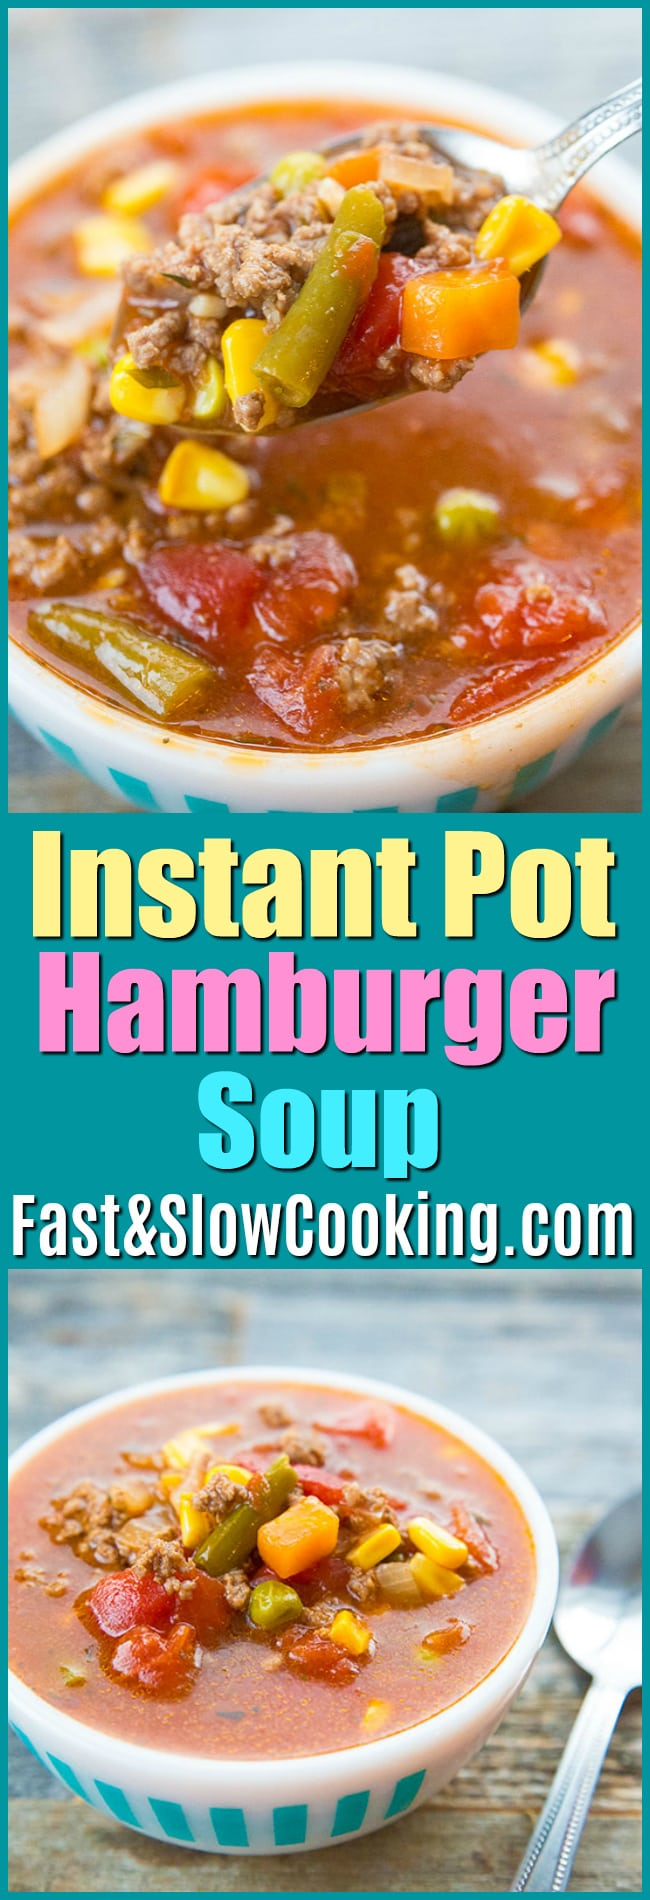 ThisInstant Pot Hamburger Soup is a super fast way to make the classic soup! You usually make it on the stove top or in the crockpot but thanks to the invention of the Instant Pot you can use your favourite pressure cooker to whip it up fast! #instantpot #soup #recipe